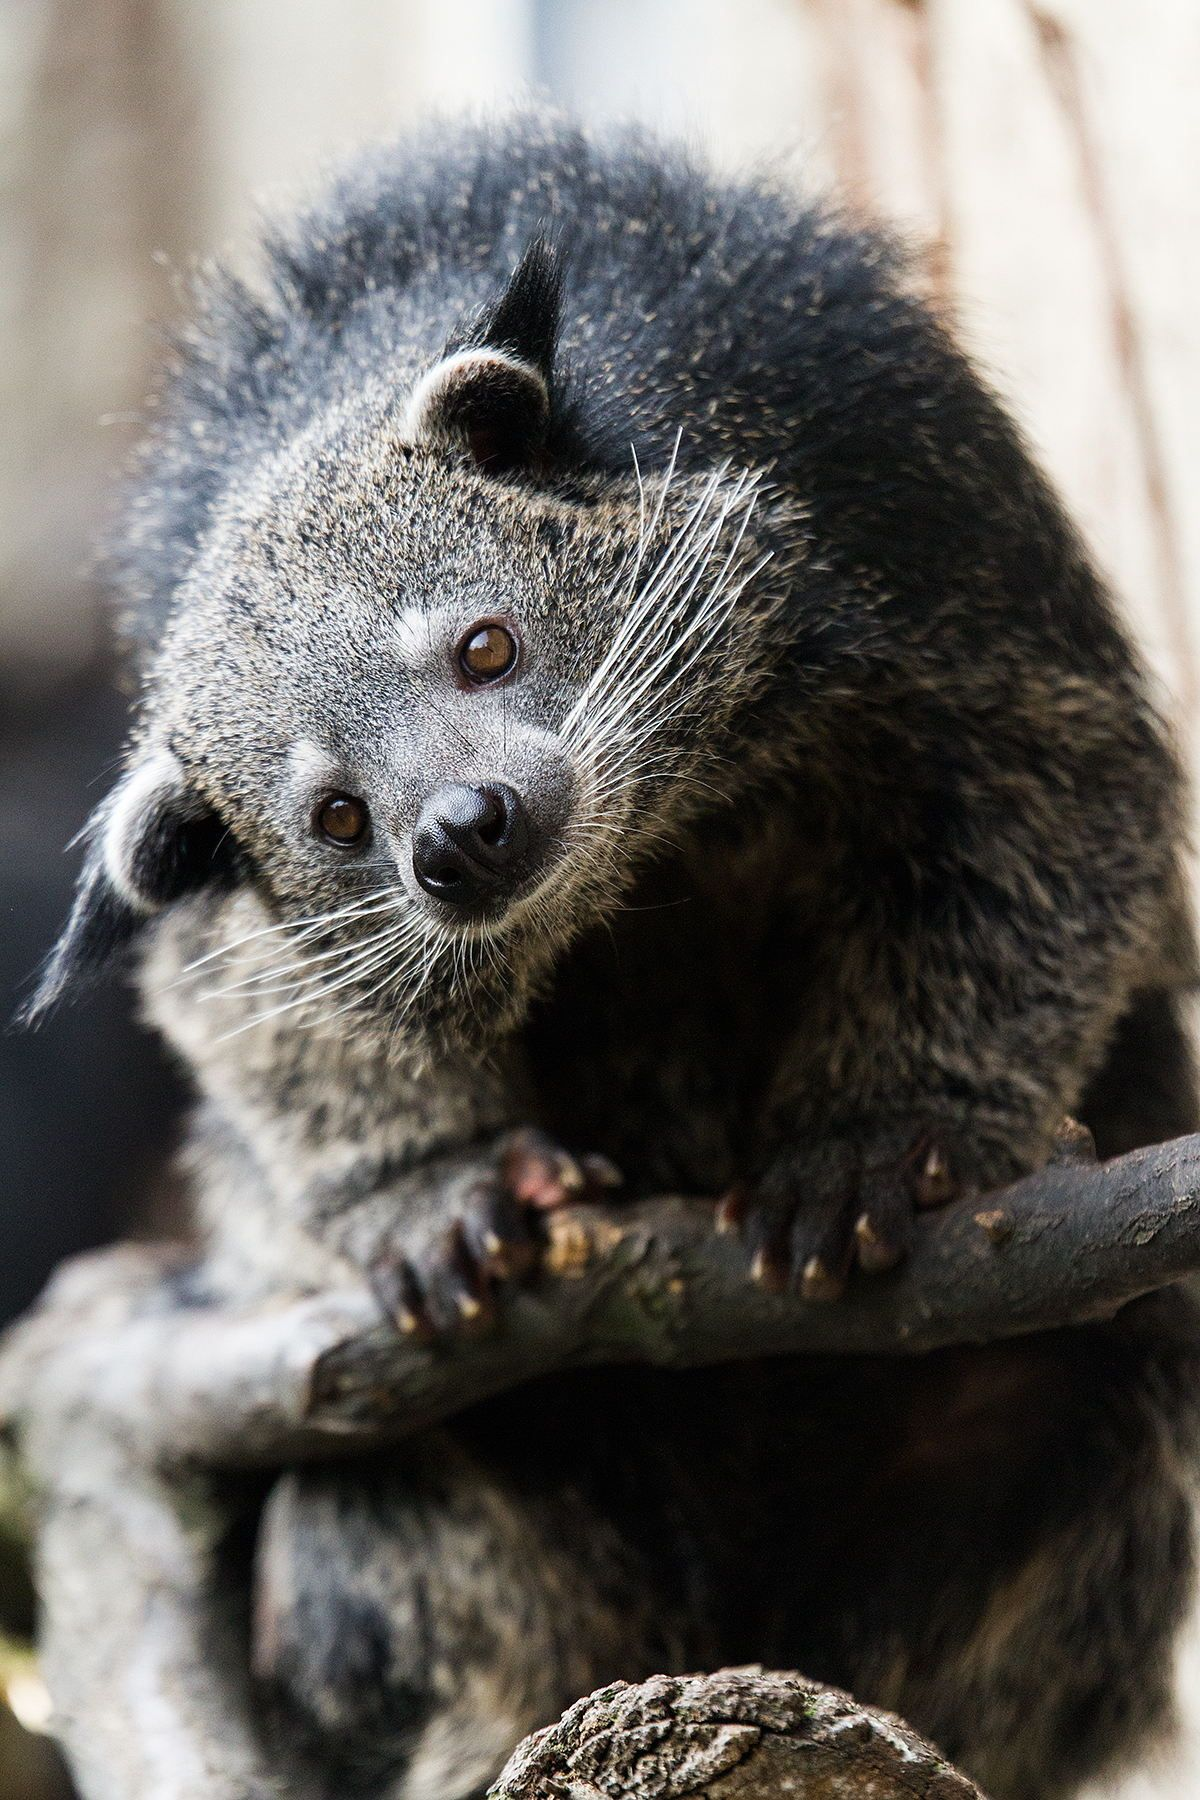 Binturong, also known as bearcat, is a viverrid native to